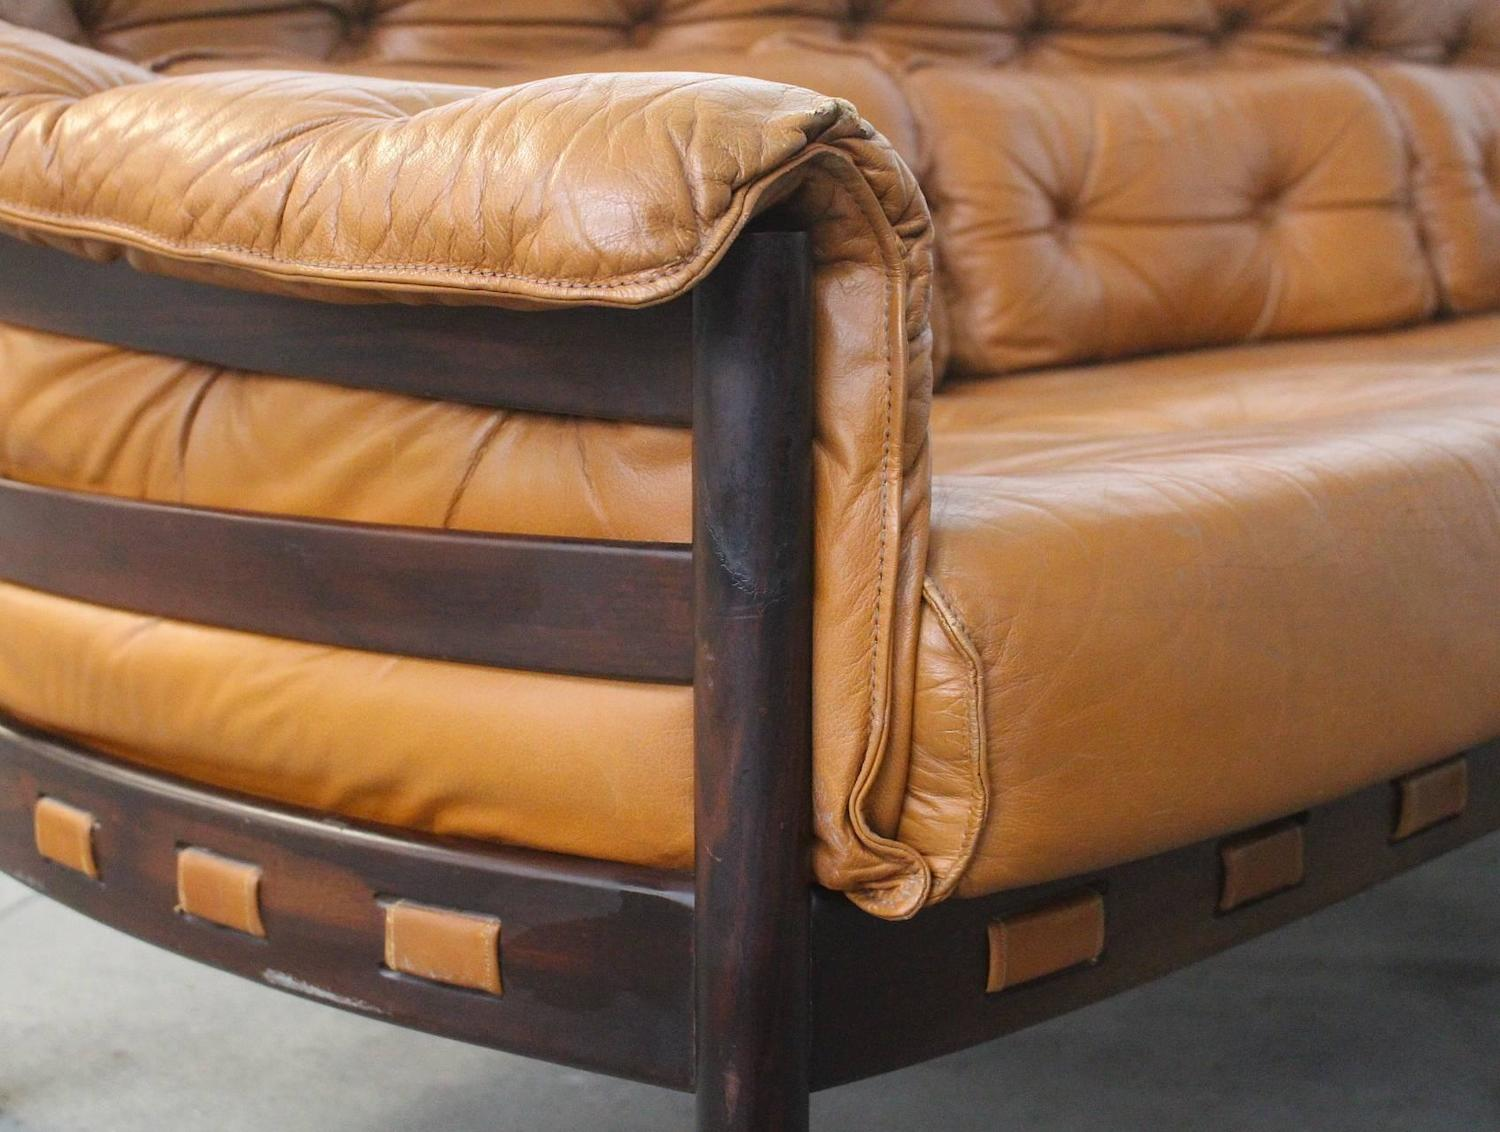 Tufted Leather Camel Colored Three-Seat Arne Norell Sofa